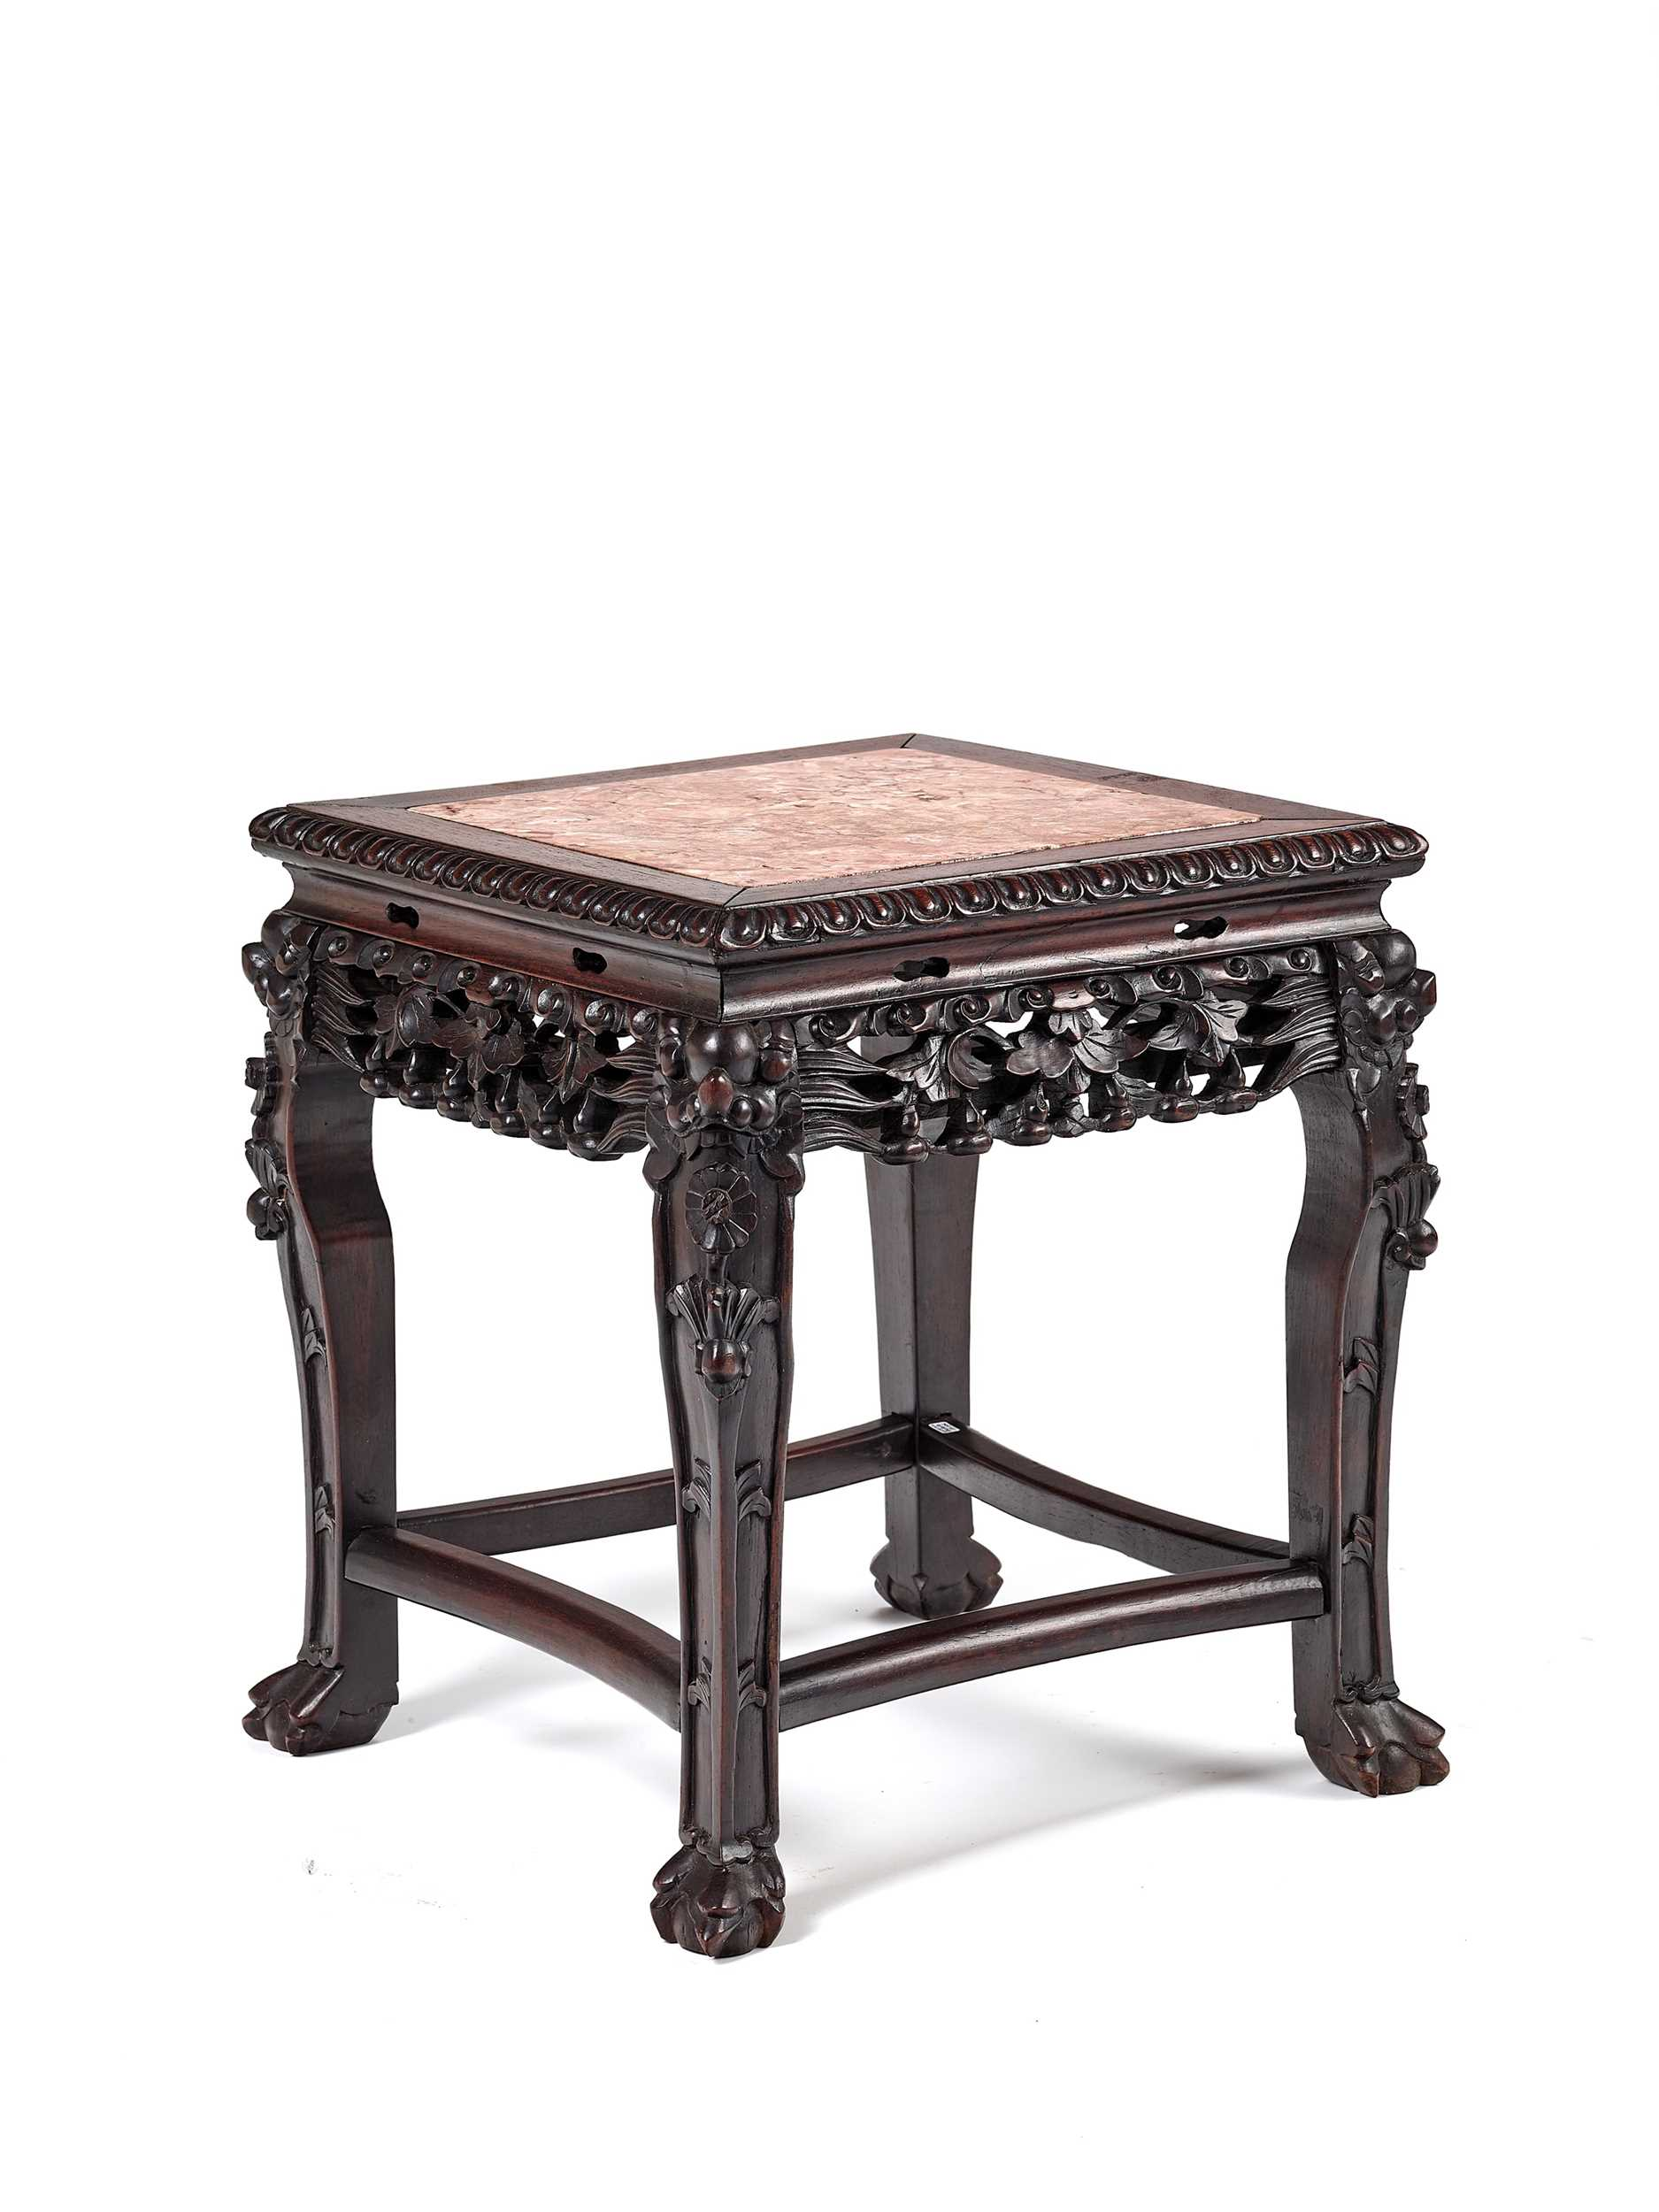 Lot 150 - A CHINESE MARBLE AND HARDWOOD SIDE TABLE, LATE QING DYNASTY